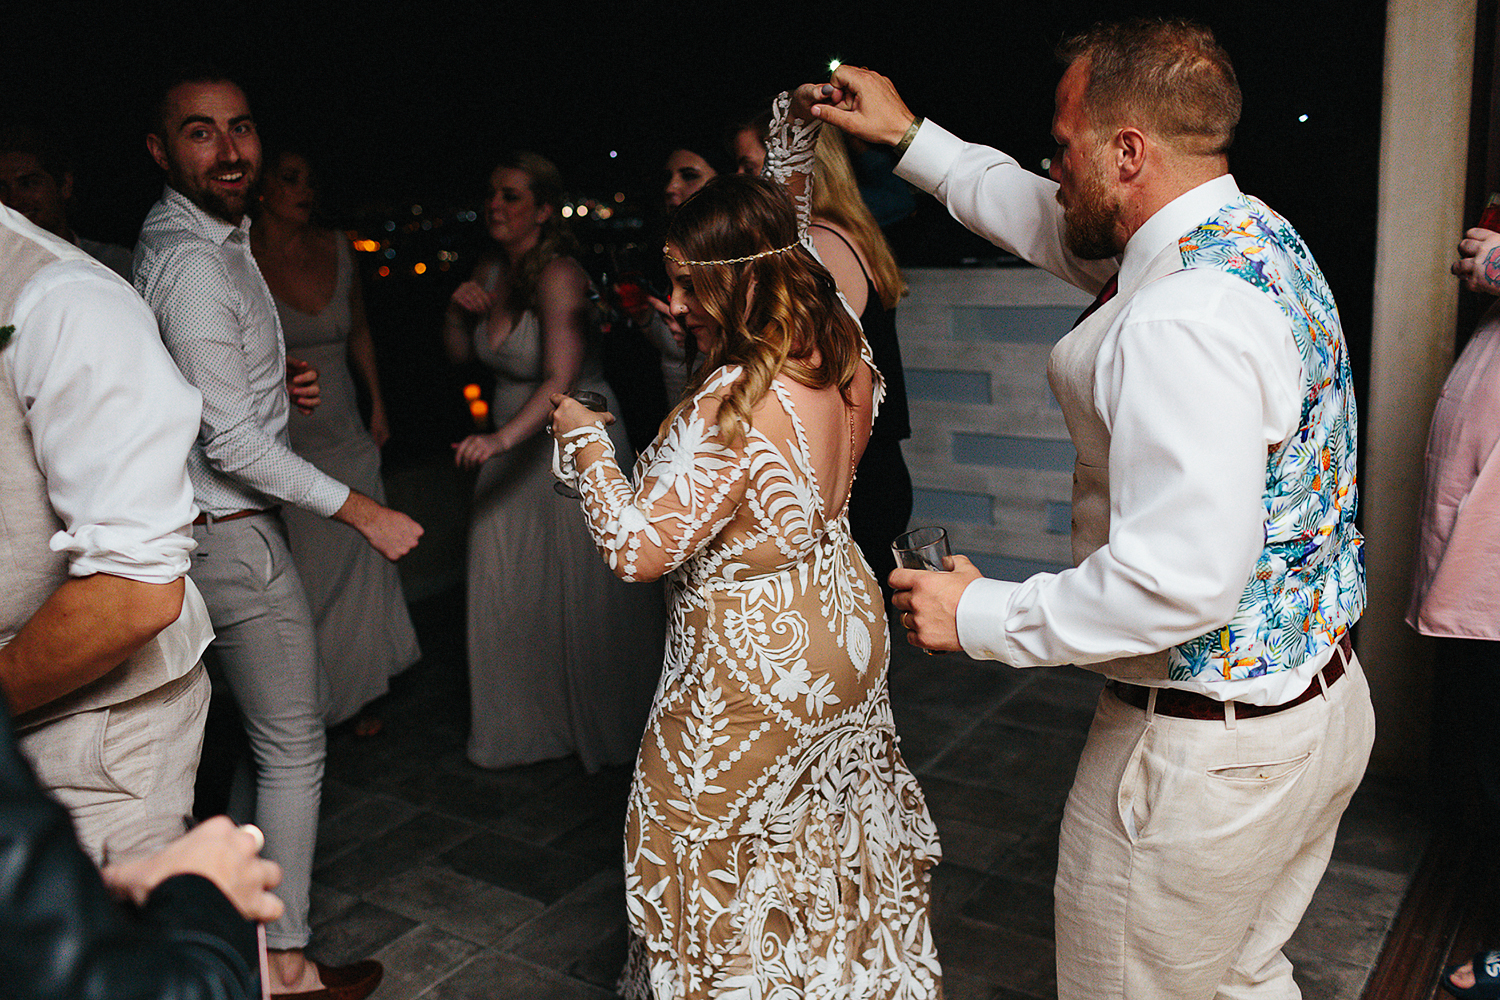 cabo-san-lucas-junebug-weddings-green-wedding-shoes-toronto-wedding-photographer-3b-photography-ventanas-private-club-mexico-reception-night-bride-and-groom-emotional-in-love-real-moments-party-dancing.jpg